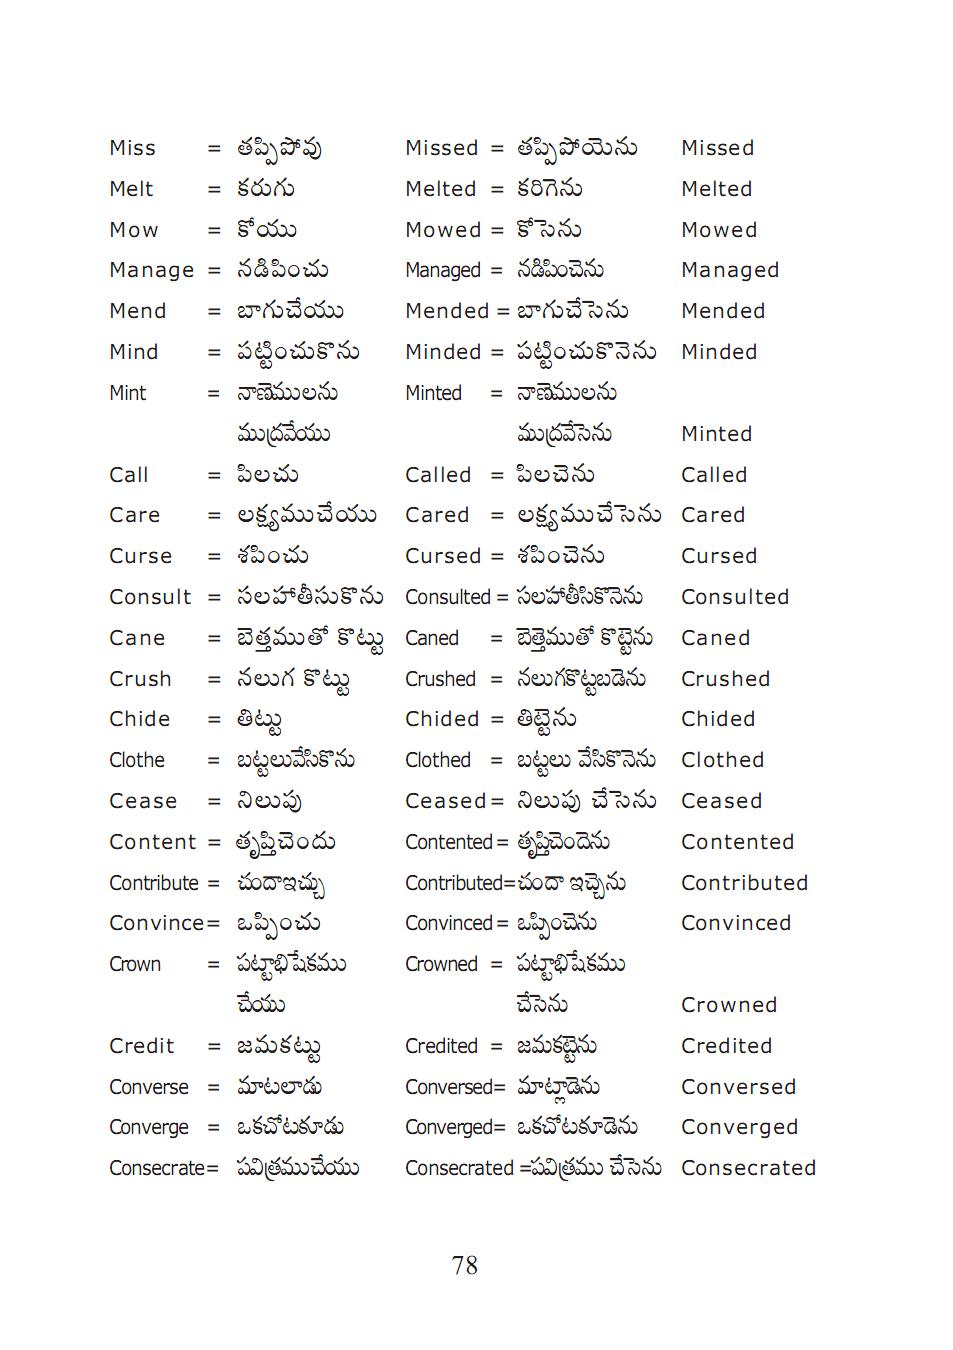 how to write telugu words in english